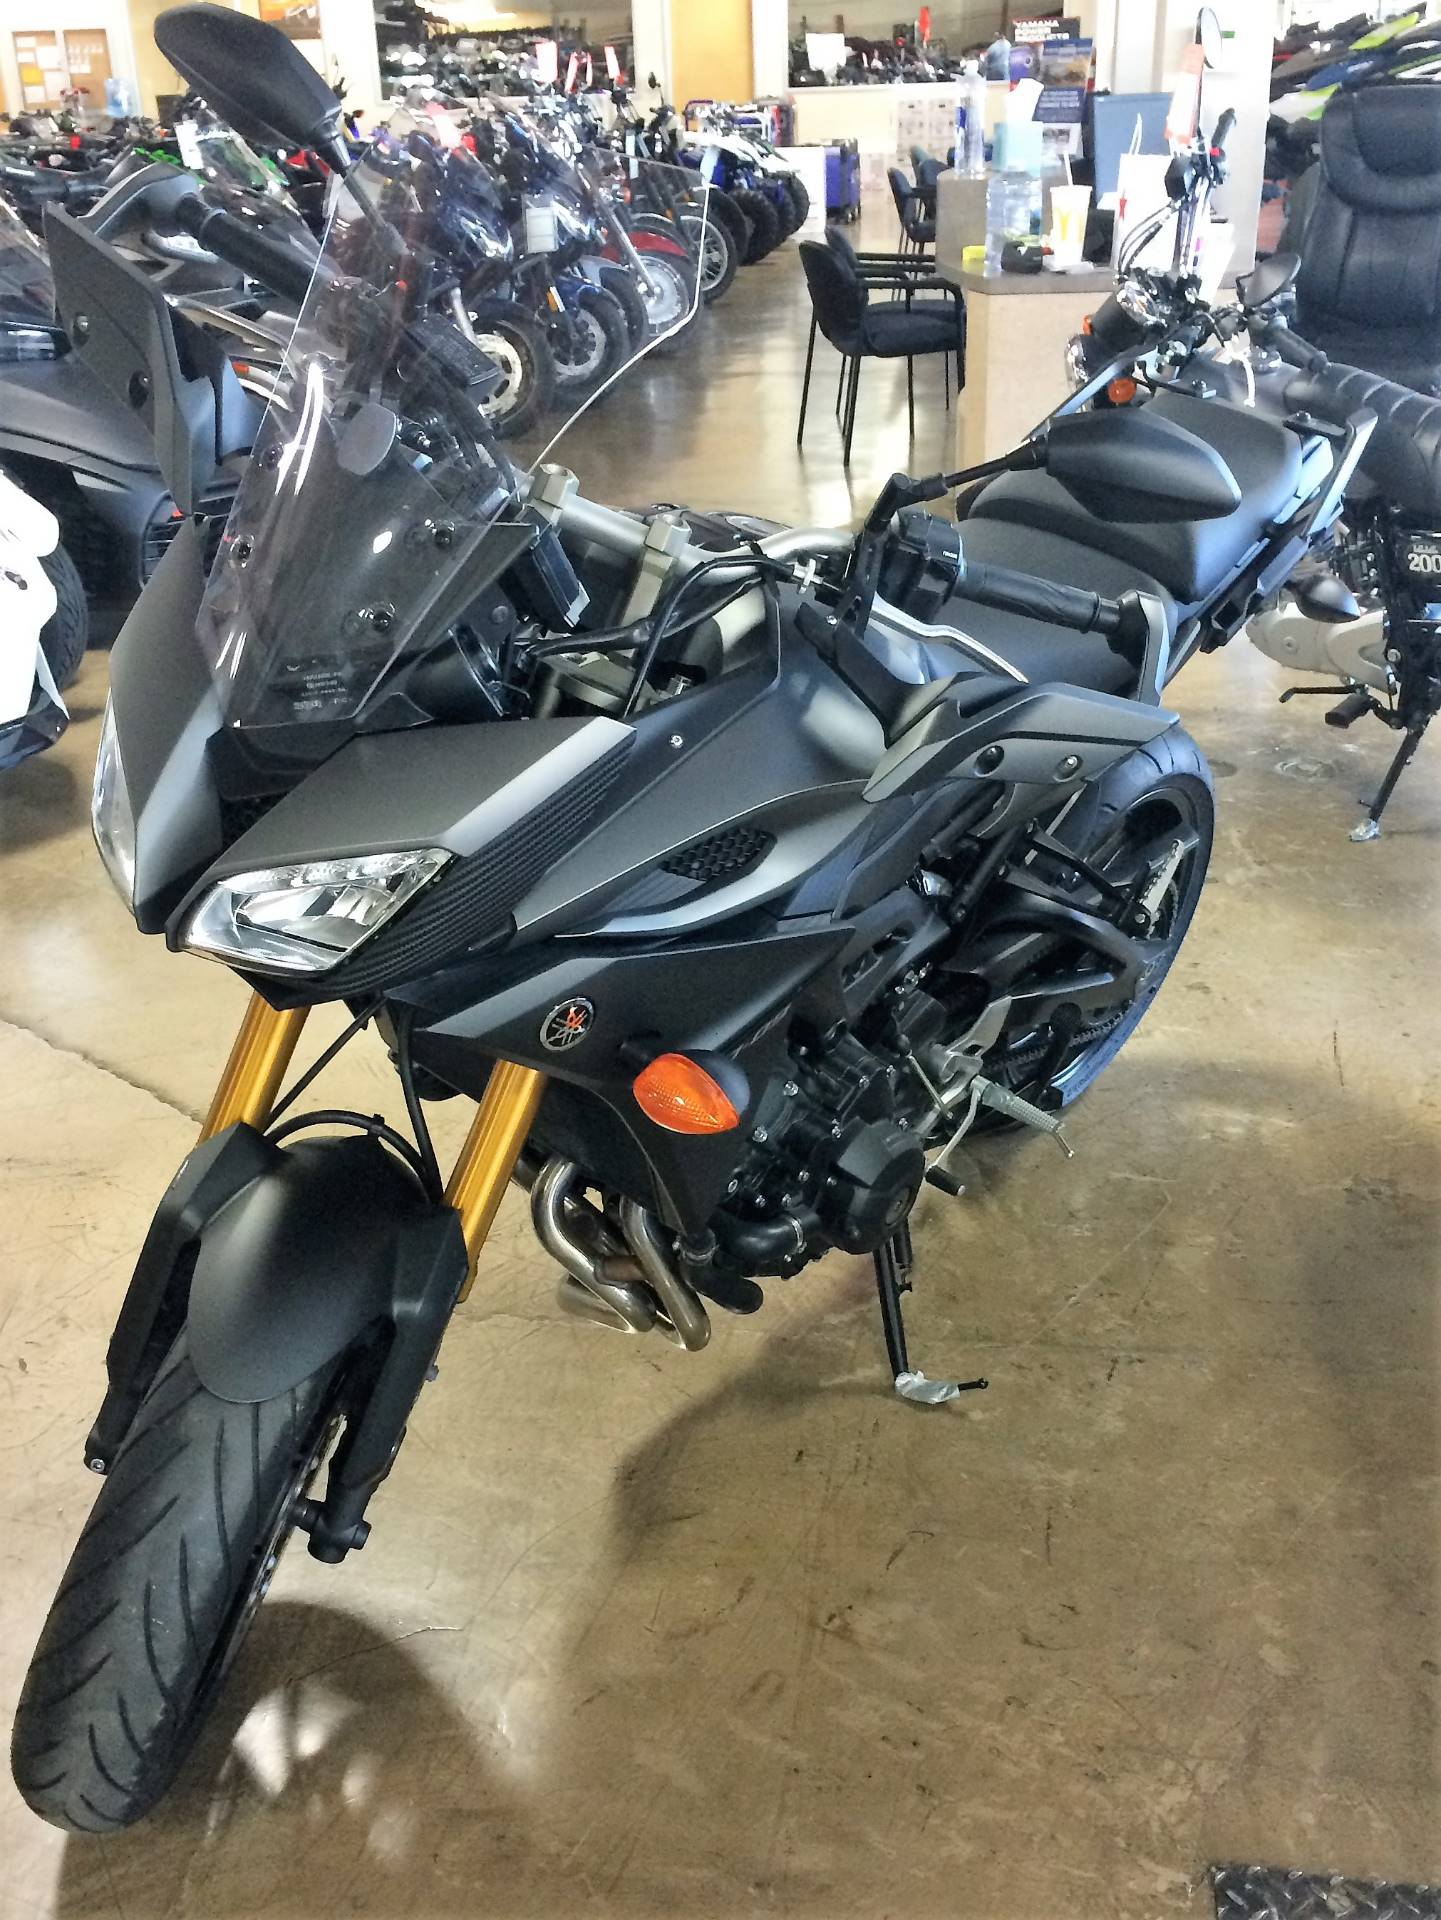 2015 Yamaha FJ-09 for sale 8627